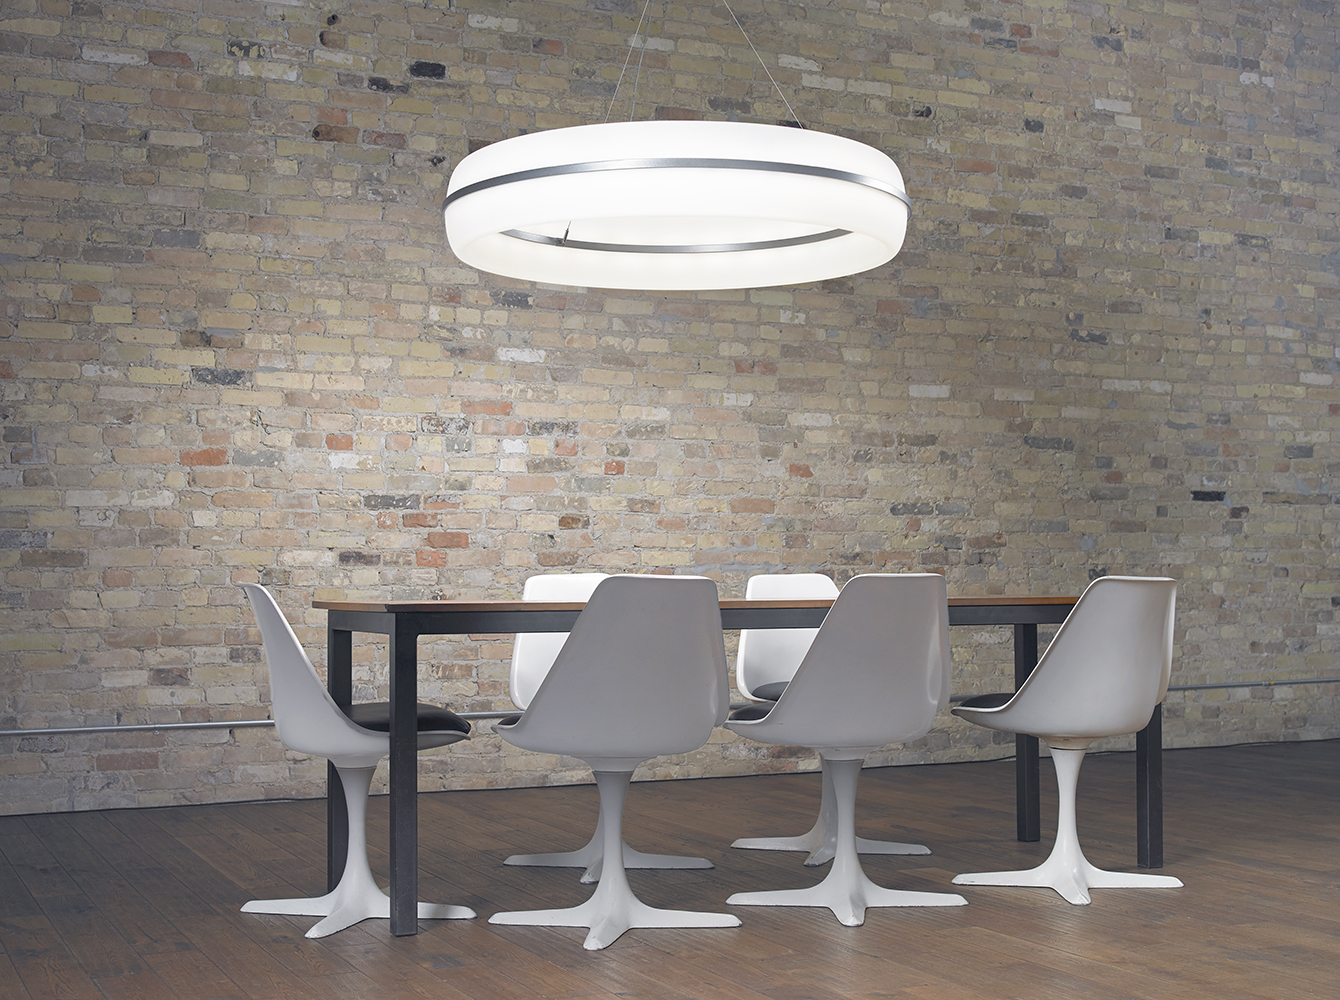 Meridian Round pendant is perfect for office lighting, seen here above a sleek conference table near a brick wall.